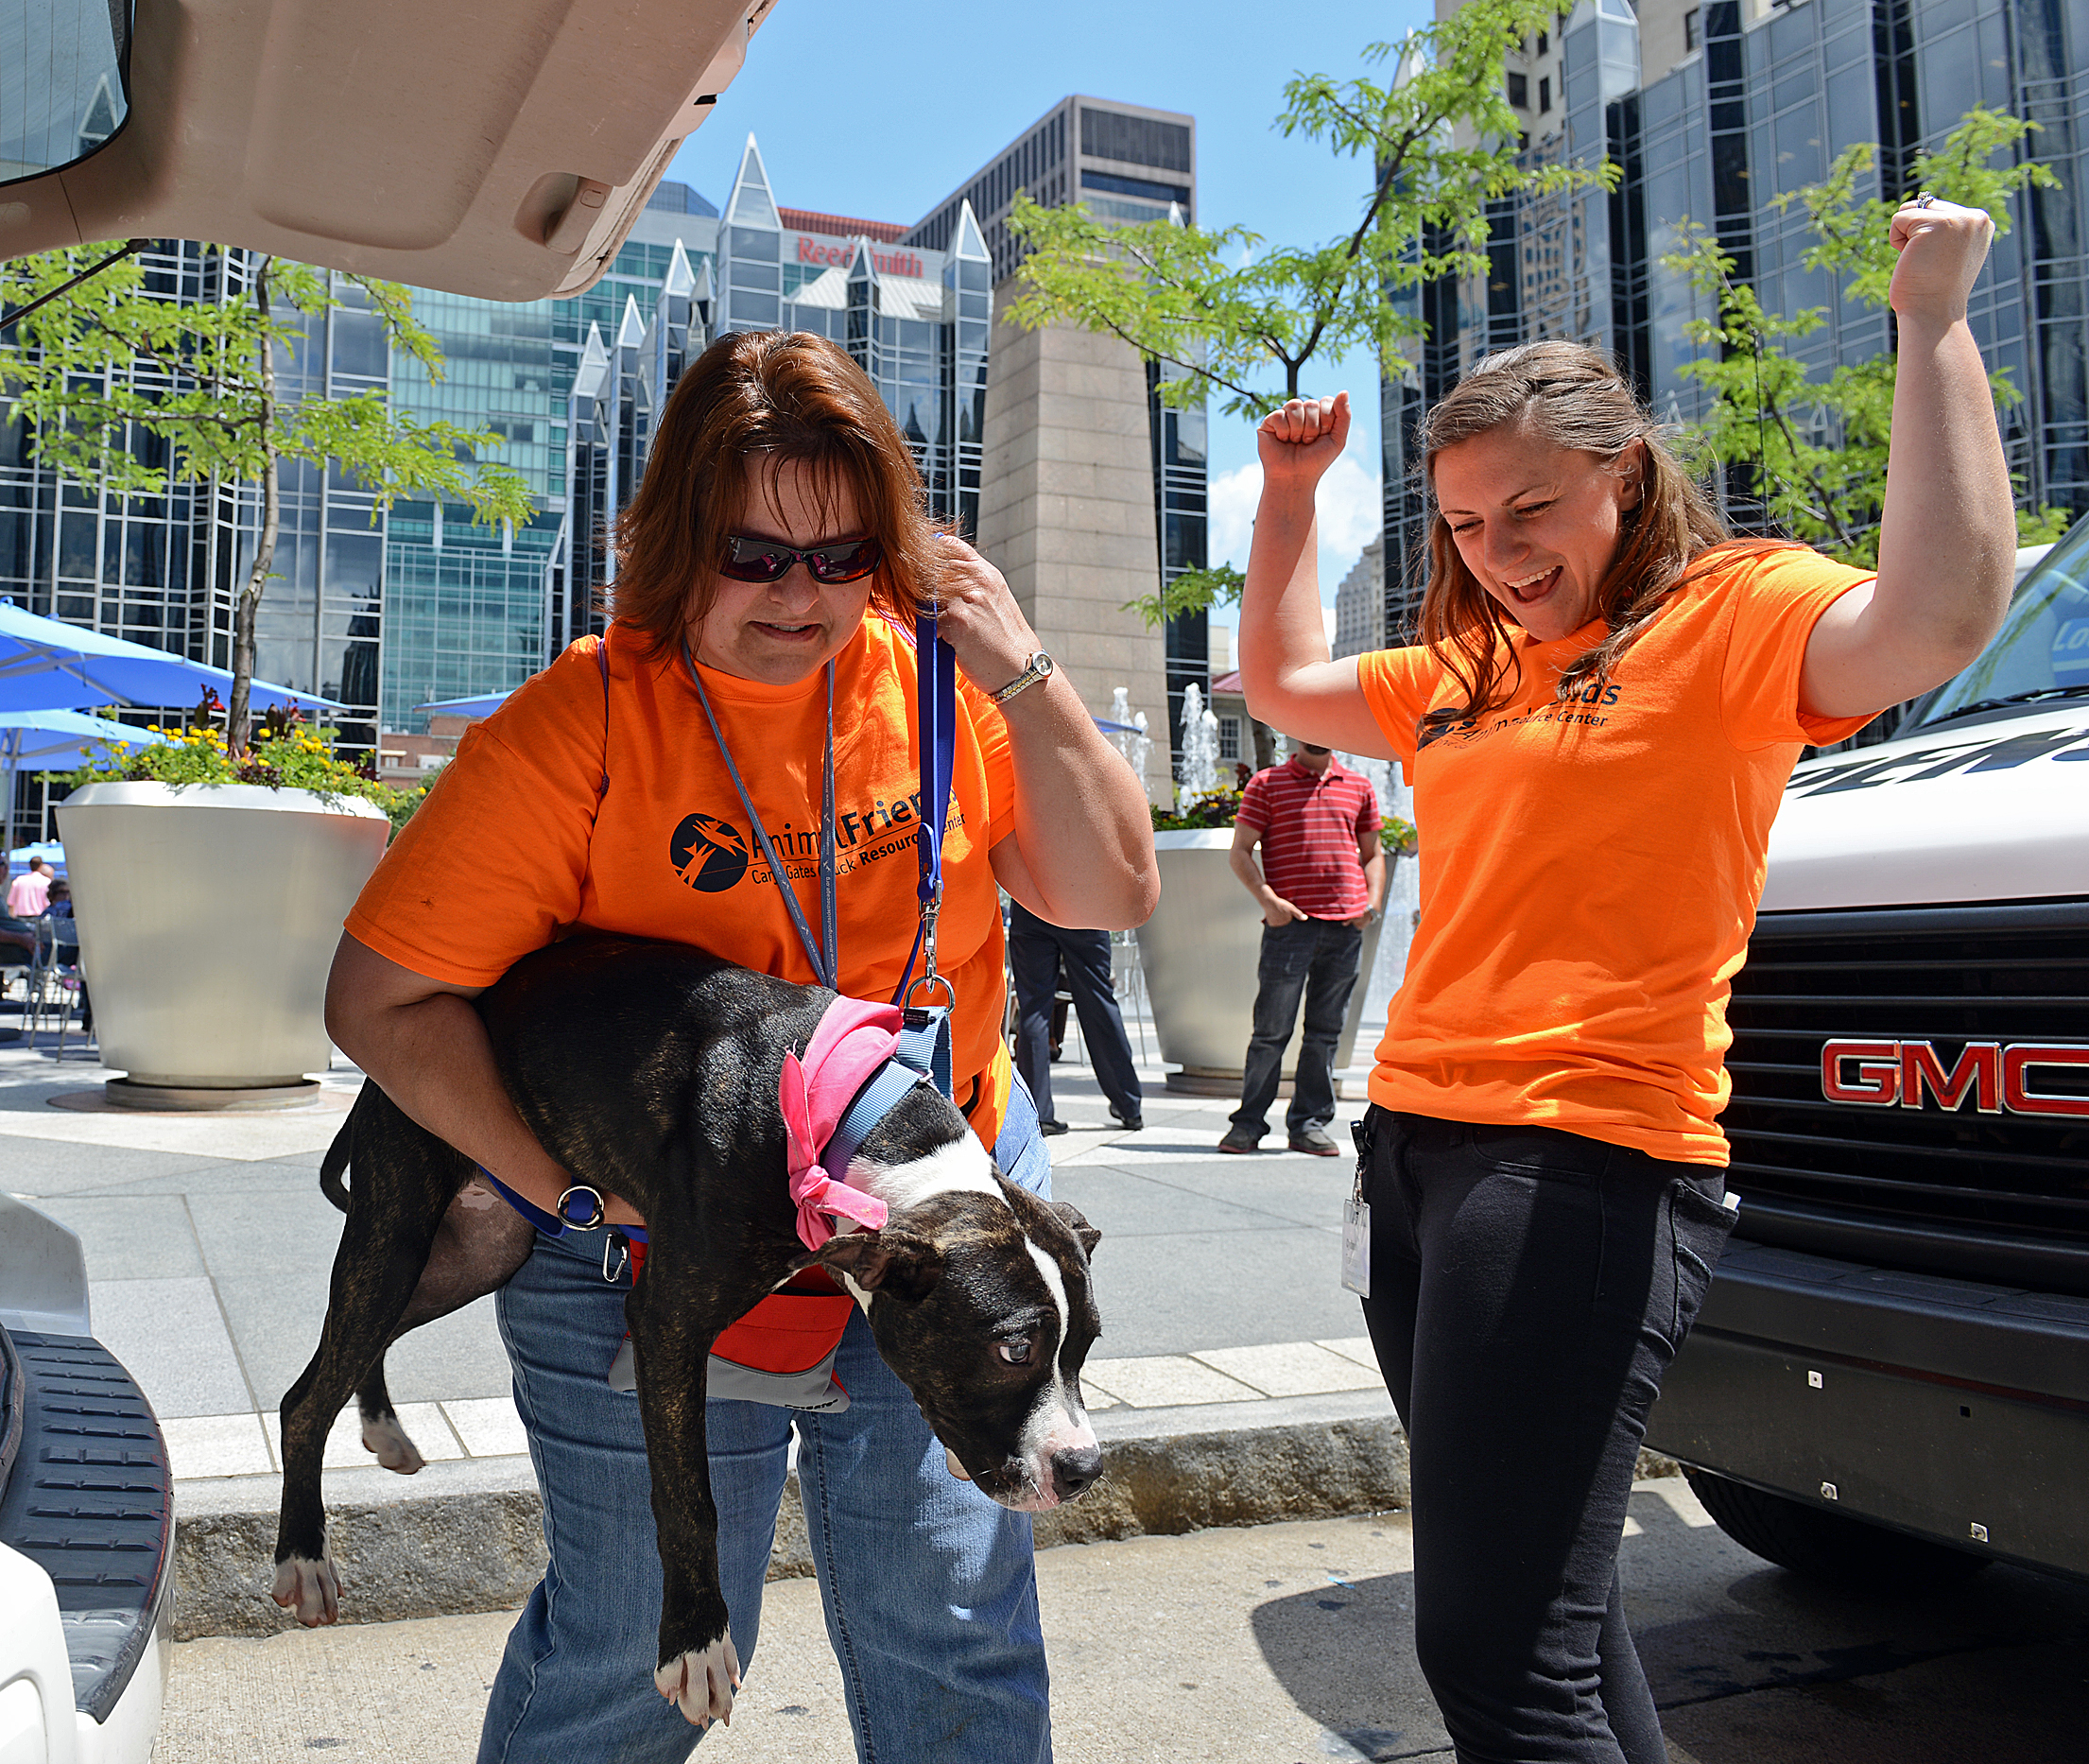 Becky DiLucia, left, and Cyndee Traversari, both of Animal Friends, unload Zeva, a seven-month-old pit bull mix, one of 20 dogs brought to PPG Place and Market Square as part of